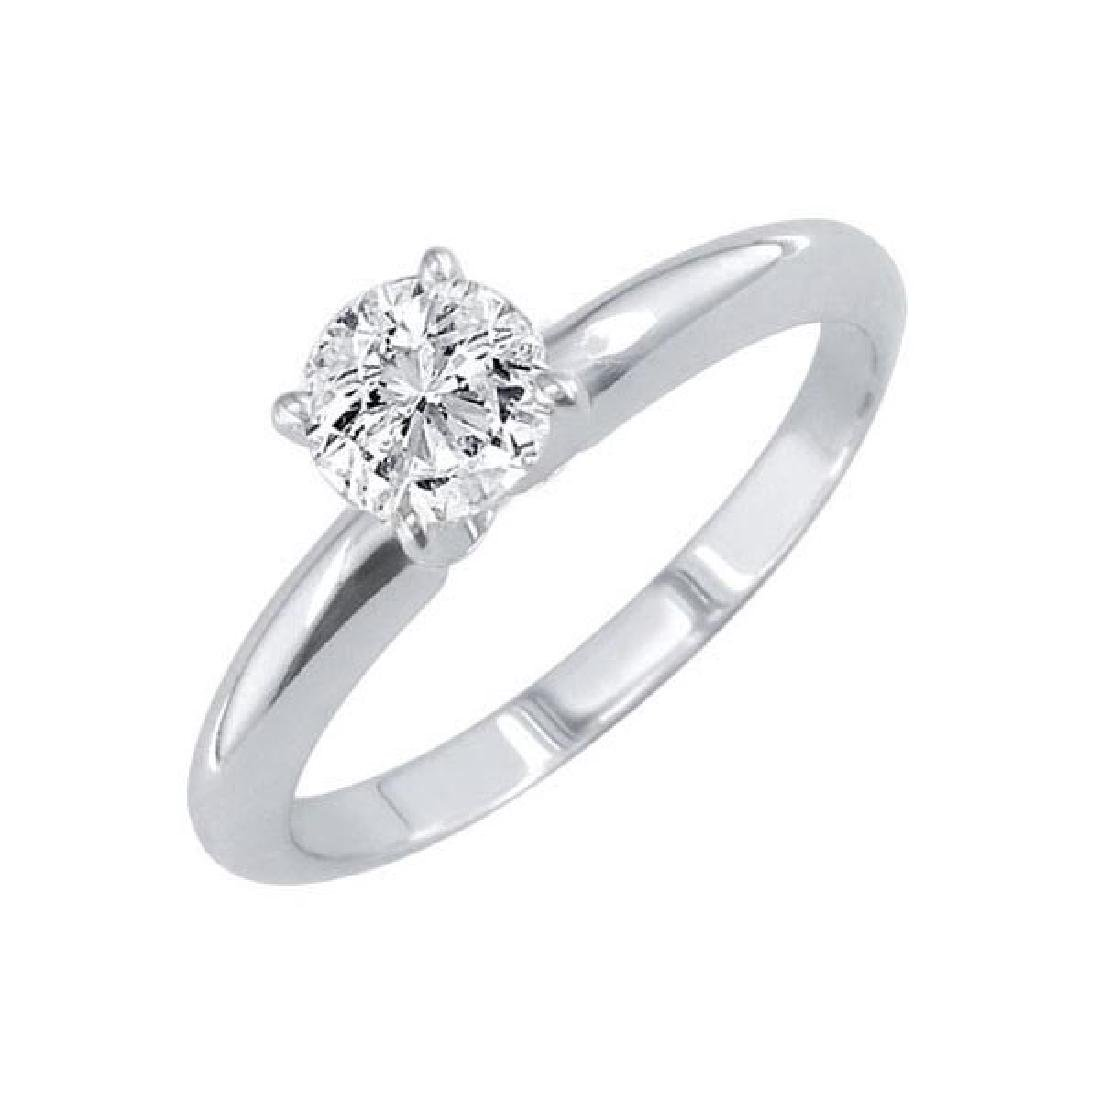 Certified 1.03 CTW Round Diamond Solitaire 14k Ring E/S